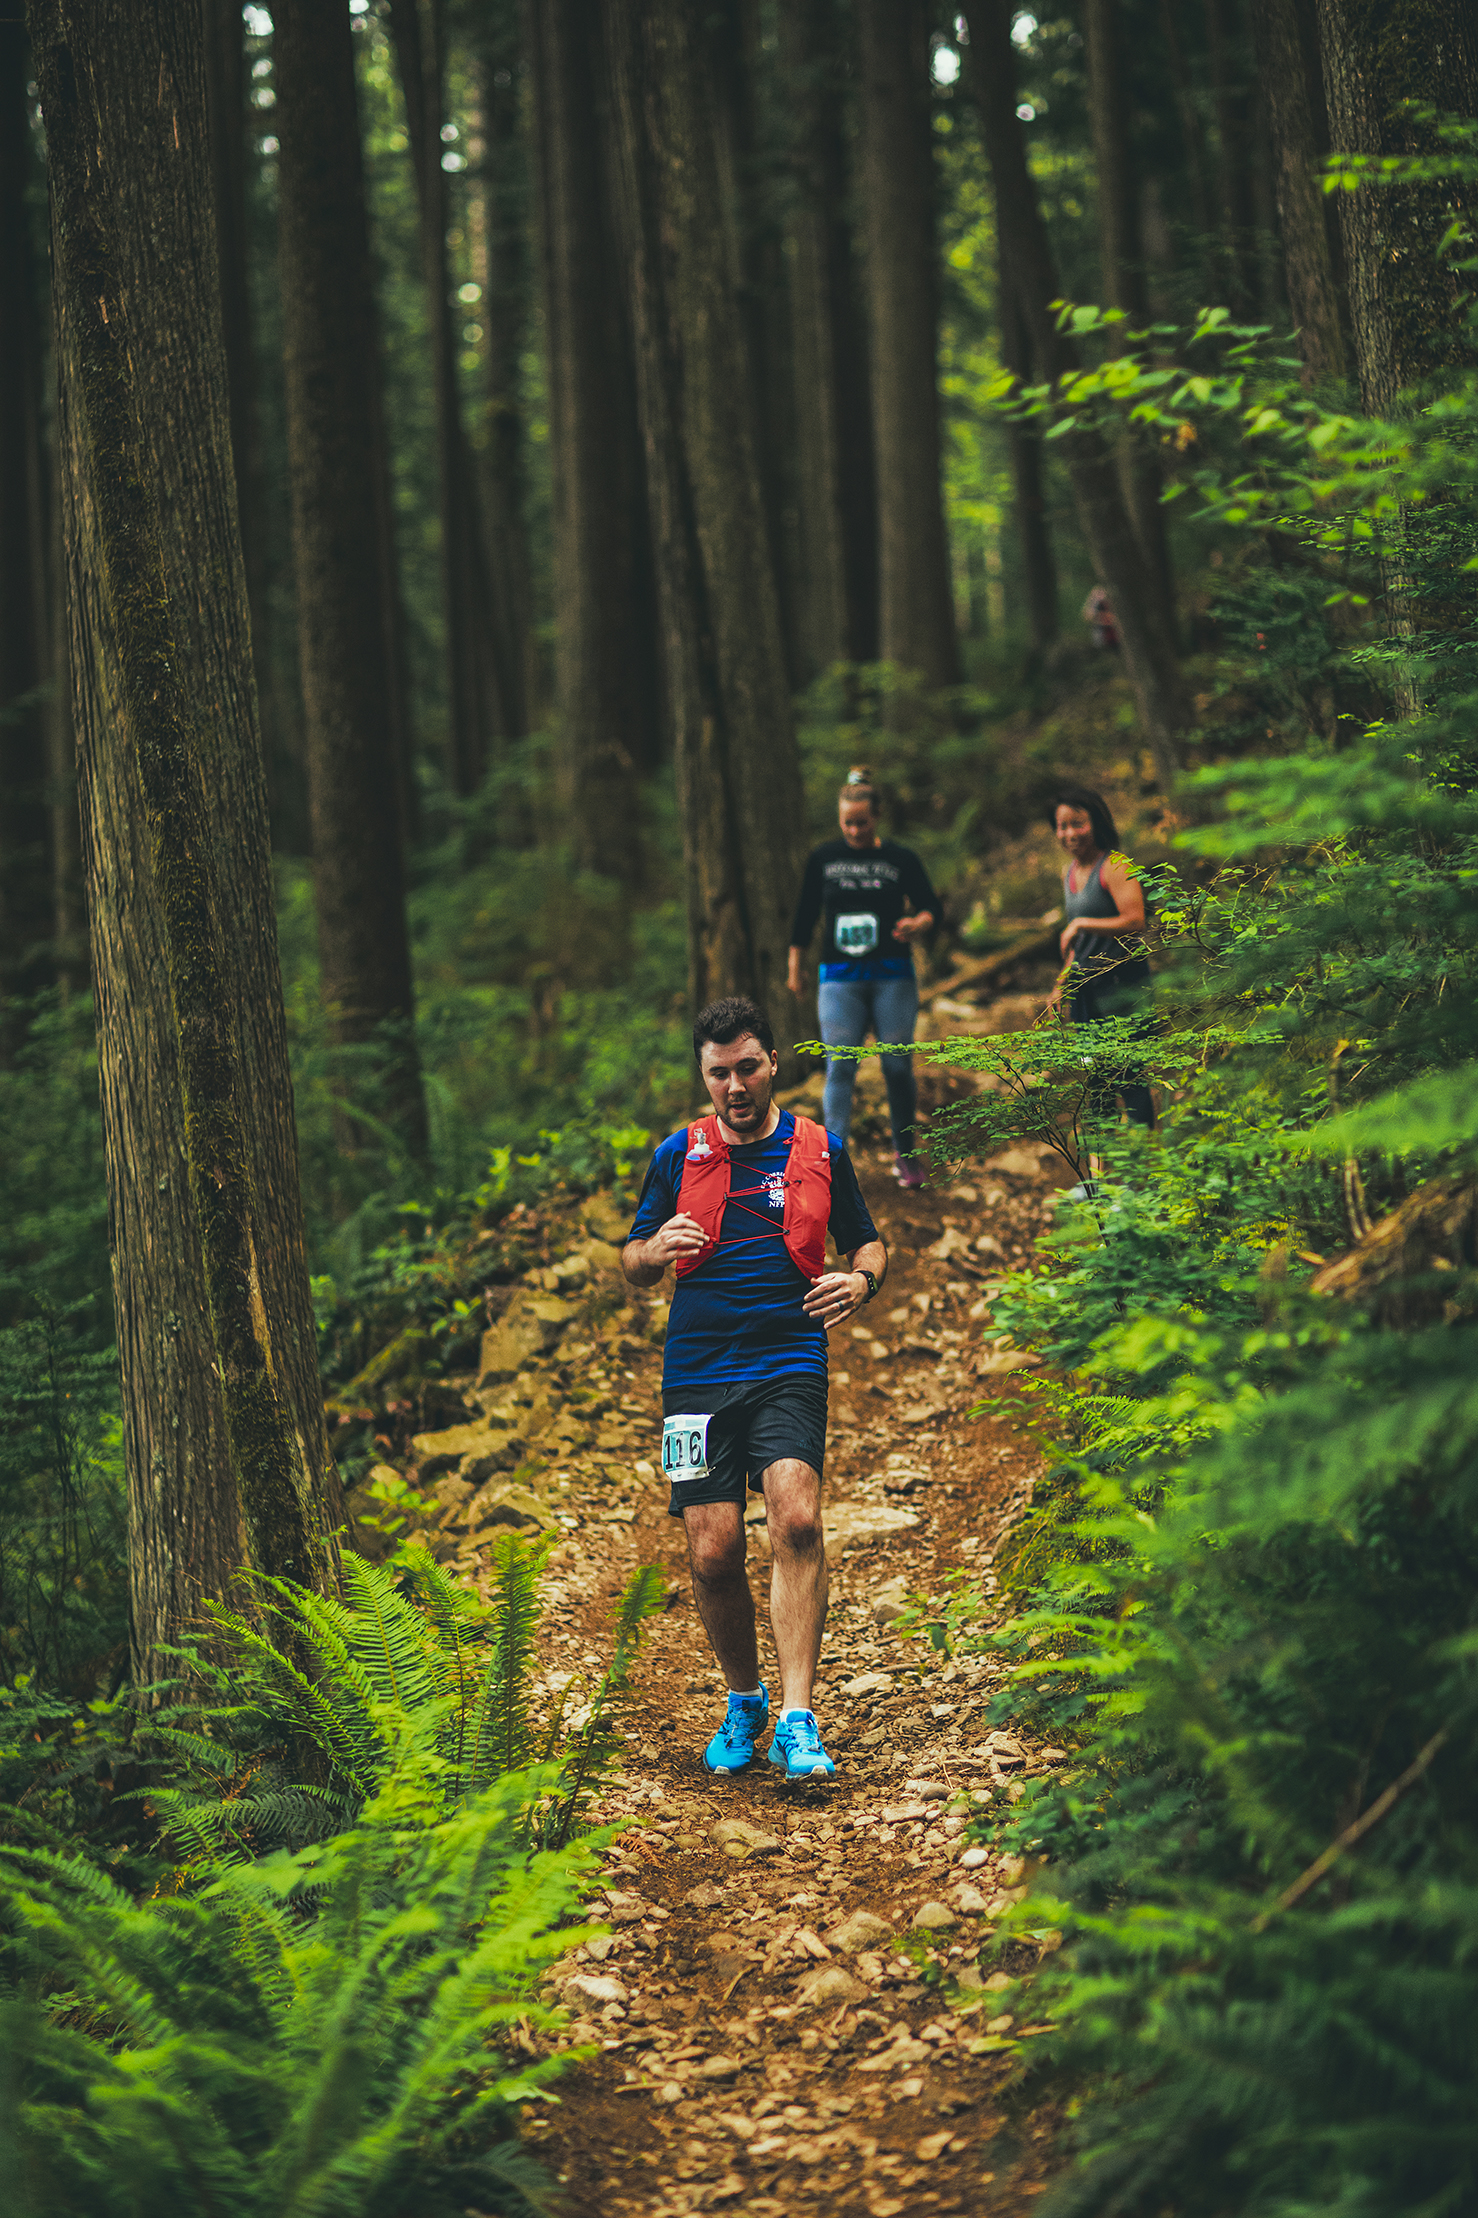 Fraser Valley Trail Races - Bear Mountain - IMG_2054 by Brice Ferre Studio - Vancouver Portrait Adventure and Athlete Photographer.jpg